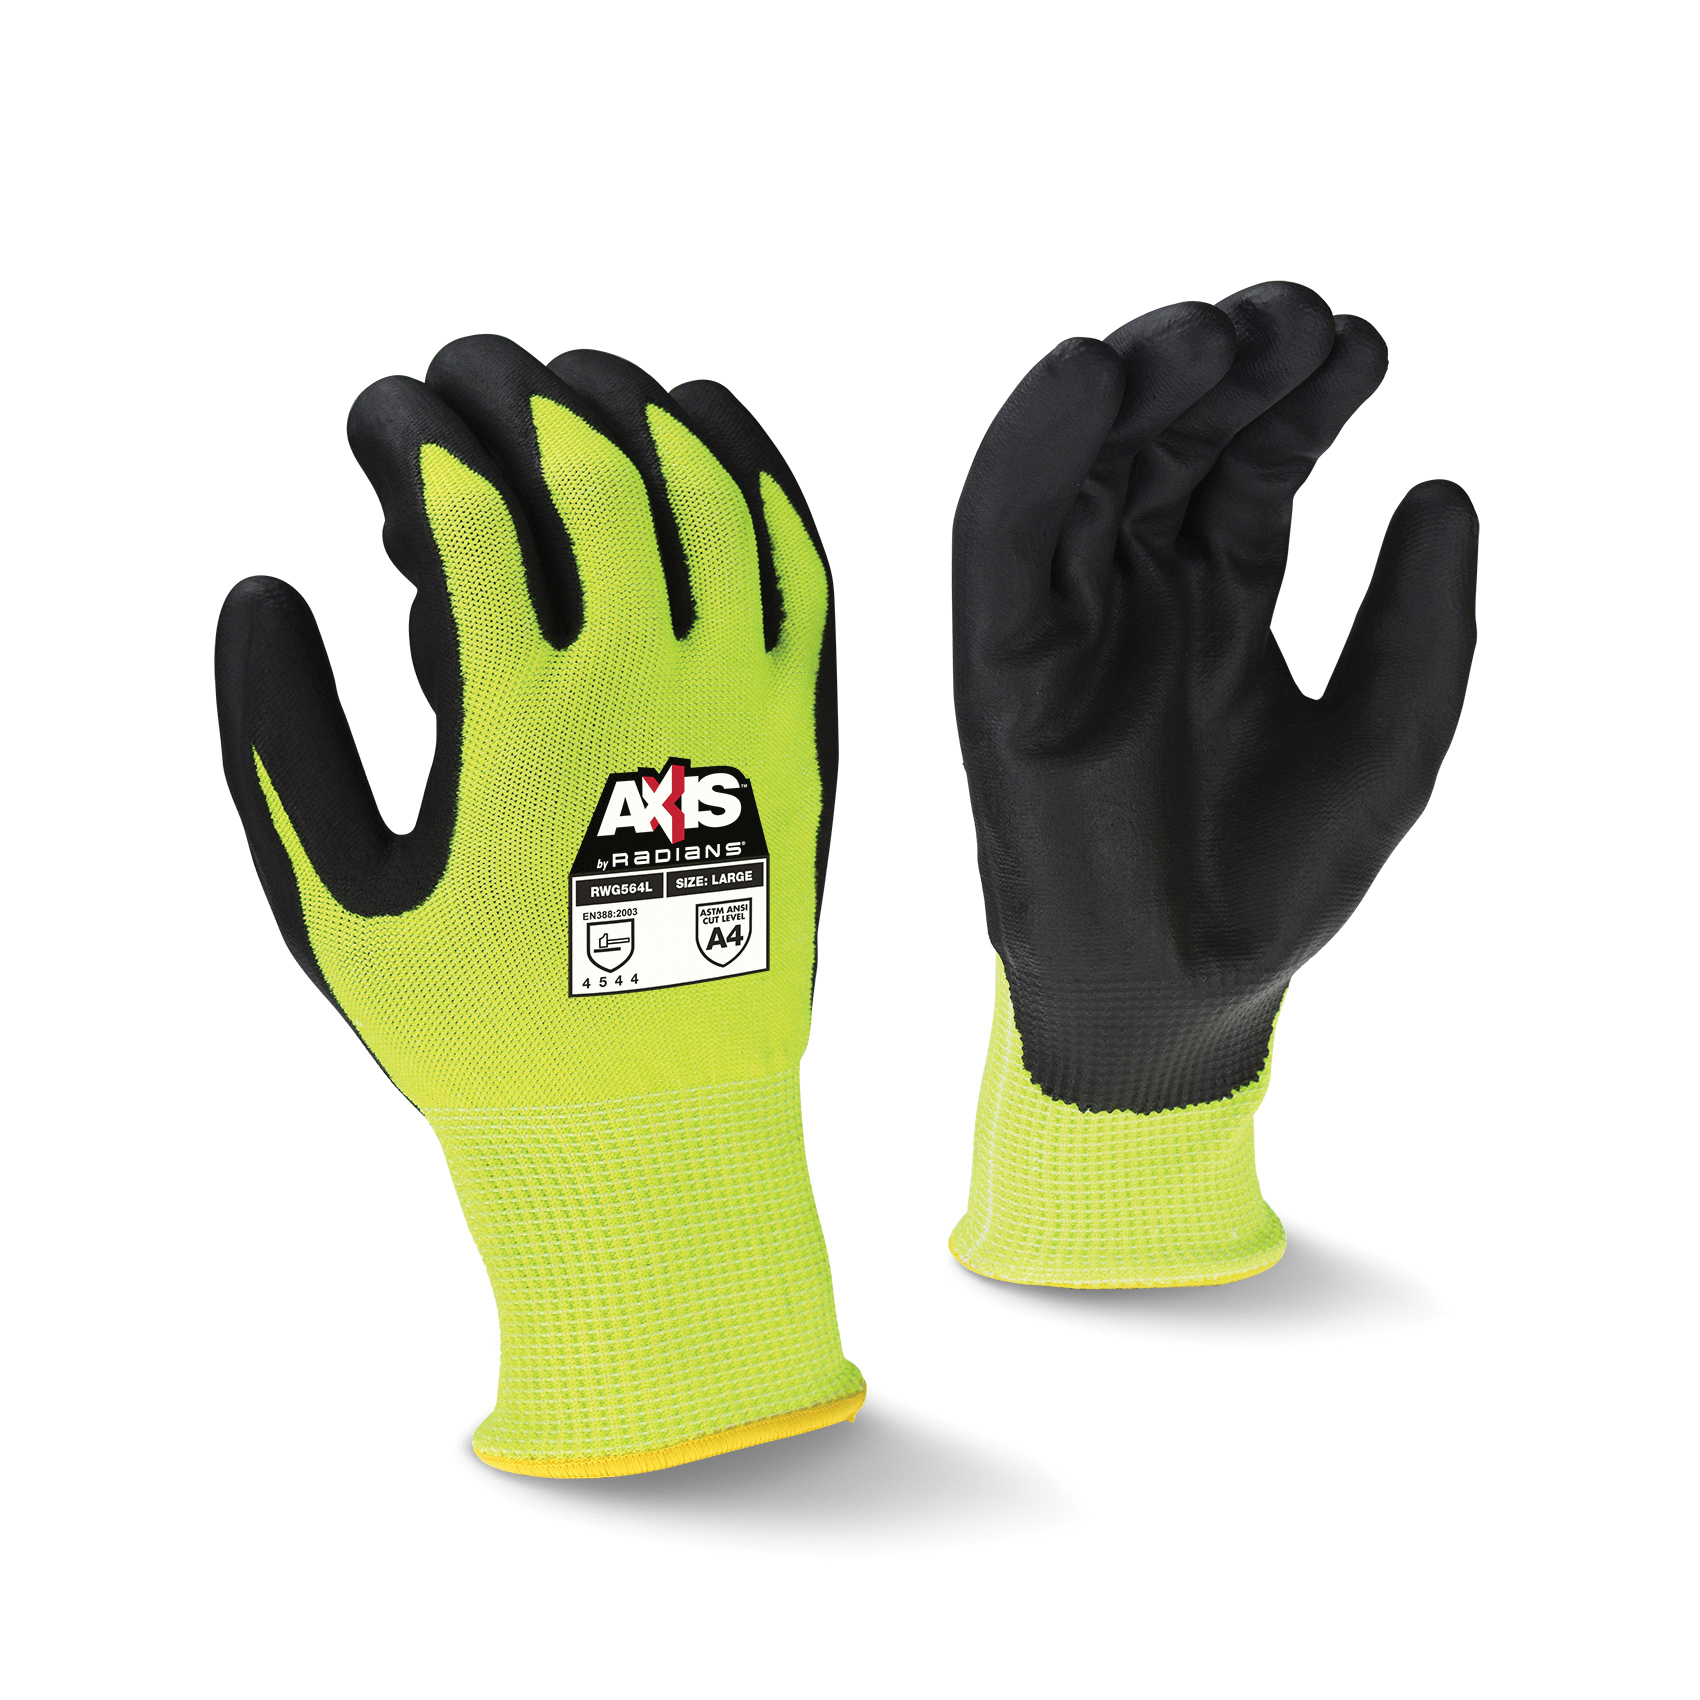 Radians® RWG564L Axis™ Cut-Resistant Gloves, L, Foam Nitrile Coating, HPPE with Fiberglass, Seamless Cuff, Resists: Abrasion, Cut, Tear and Puncture, ANSI Cut-Resistance Level: A4, ANSI Puncture-Resistance Level: 5